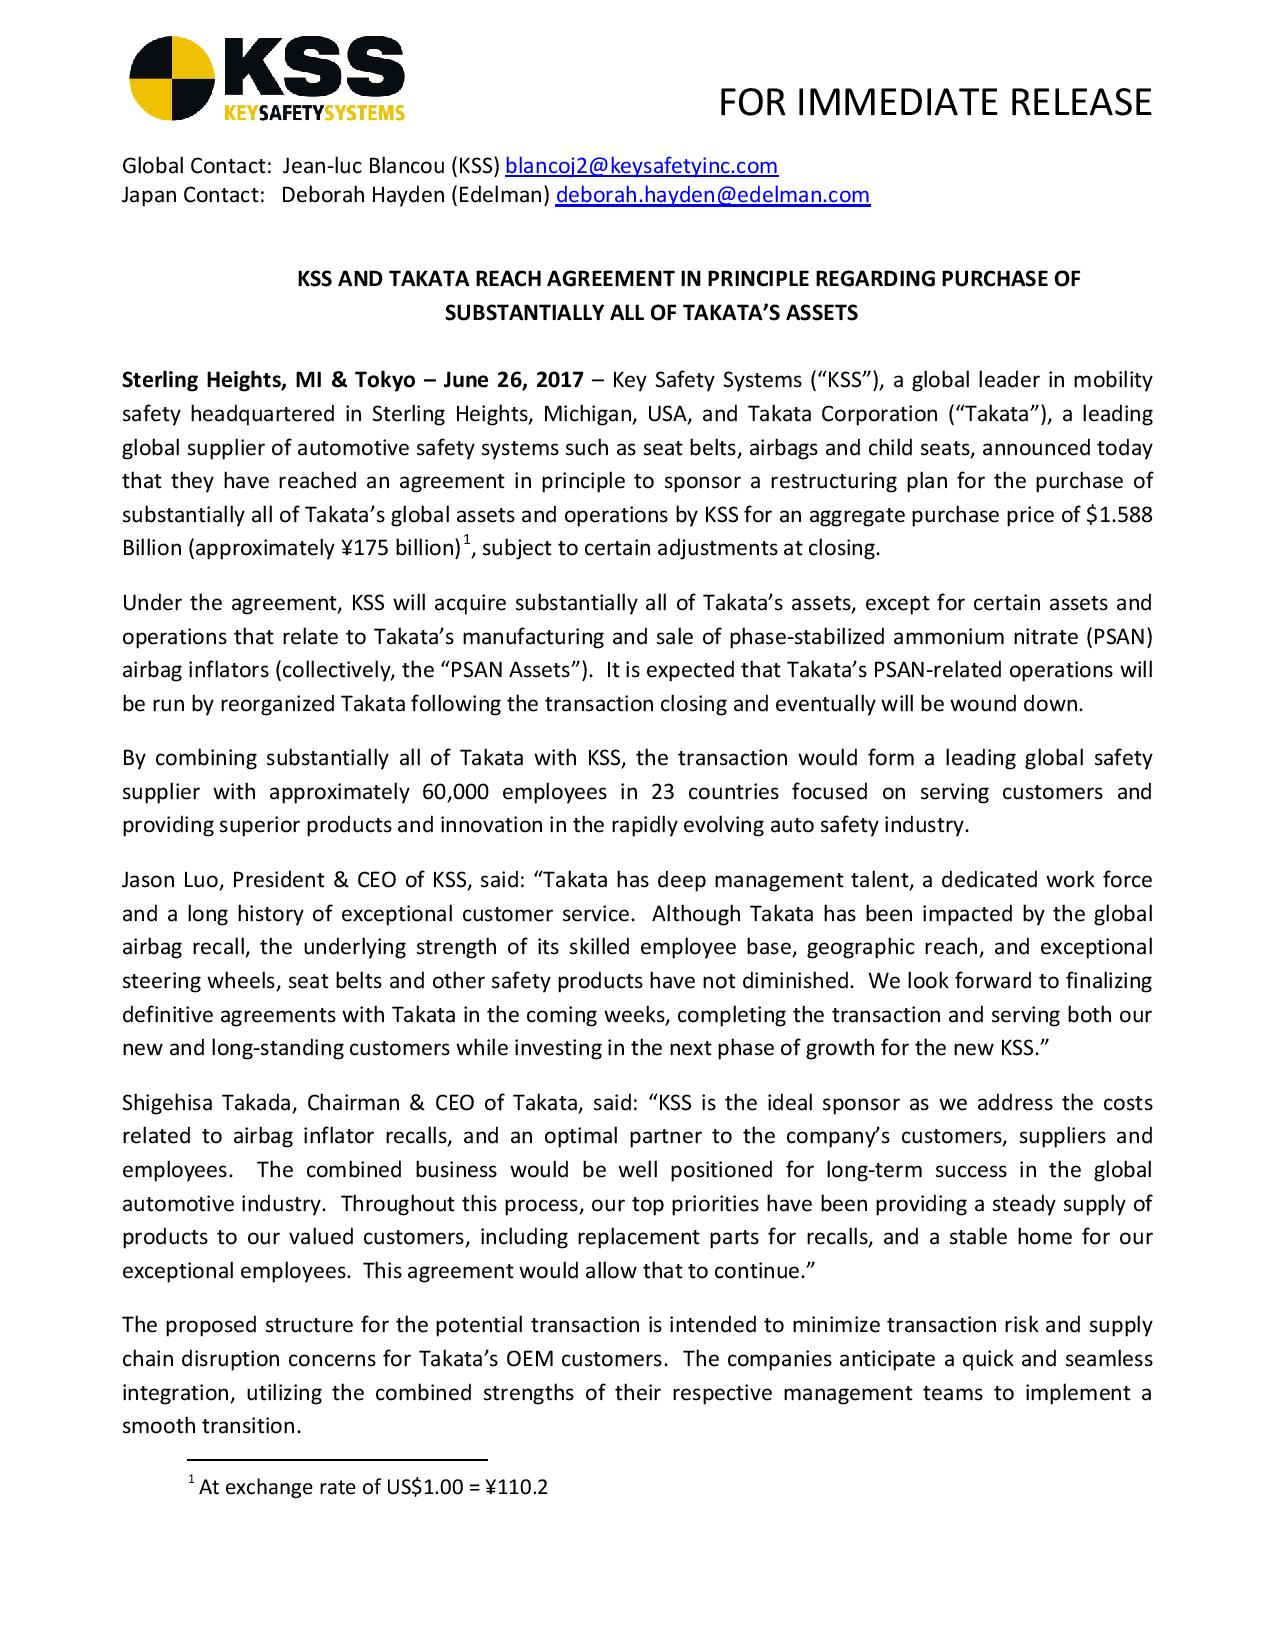 KSS-AND-TAKATA-REACH-AGREEMENT-IN-PRINCIPLE-REGARDING-PURCHASE-OF-SUBSTANTIALLY-ALL-OF-TAKATAS-ASSETS-6 26 17-page-001